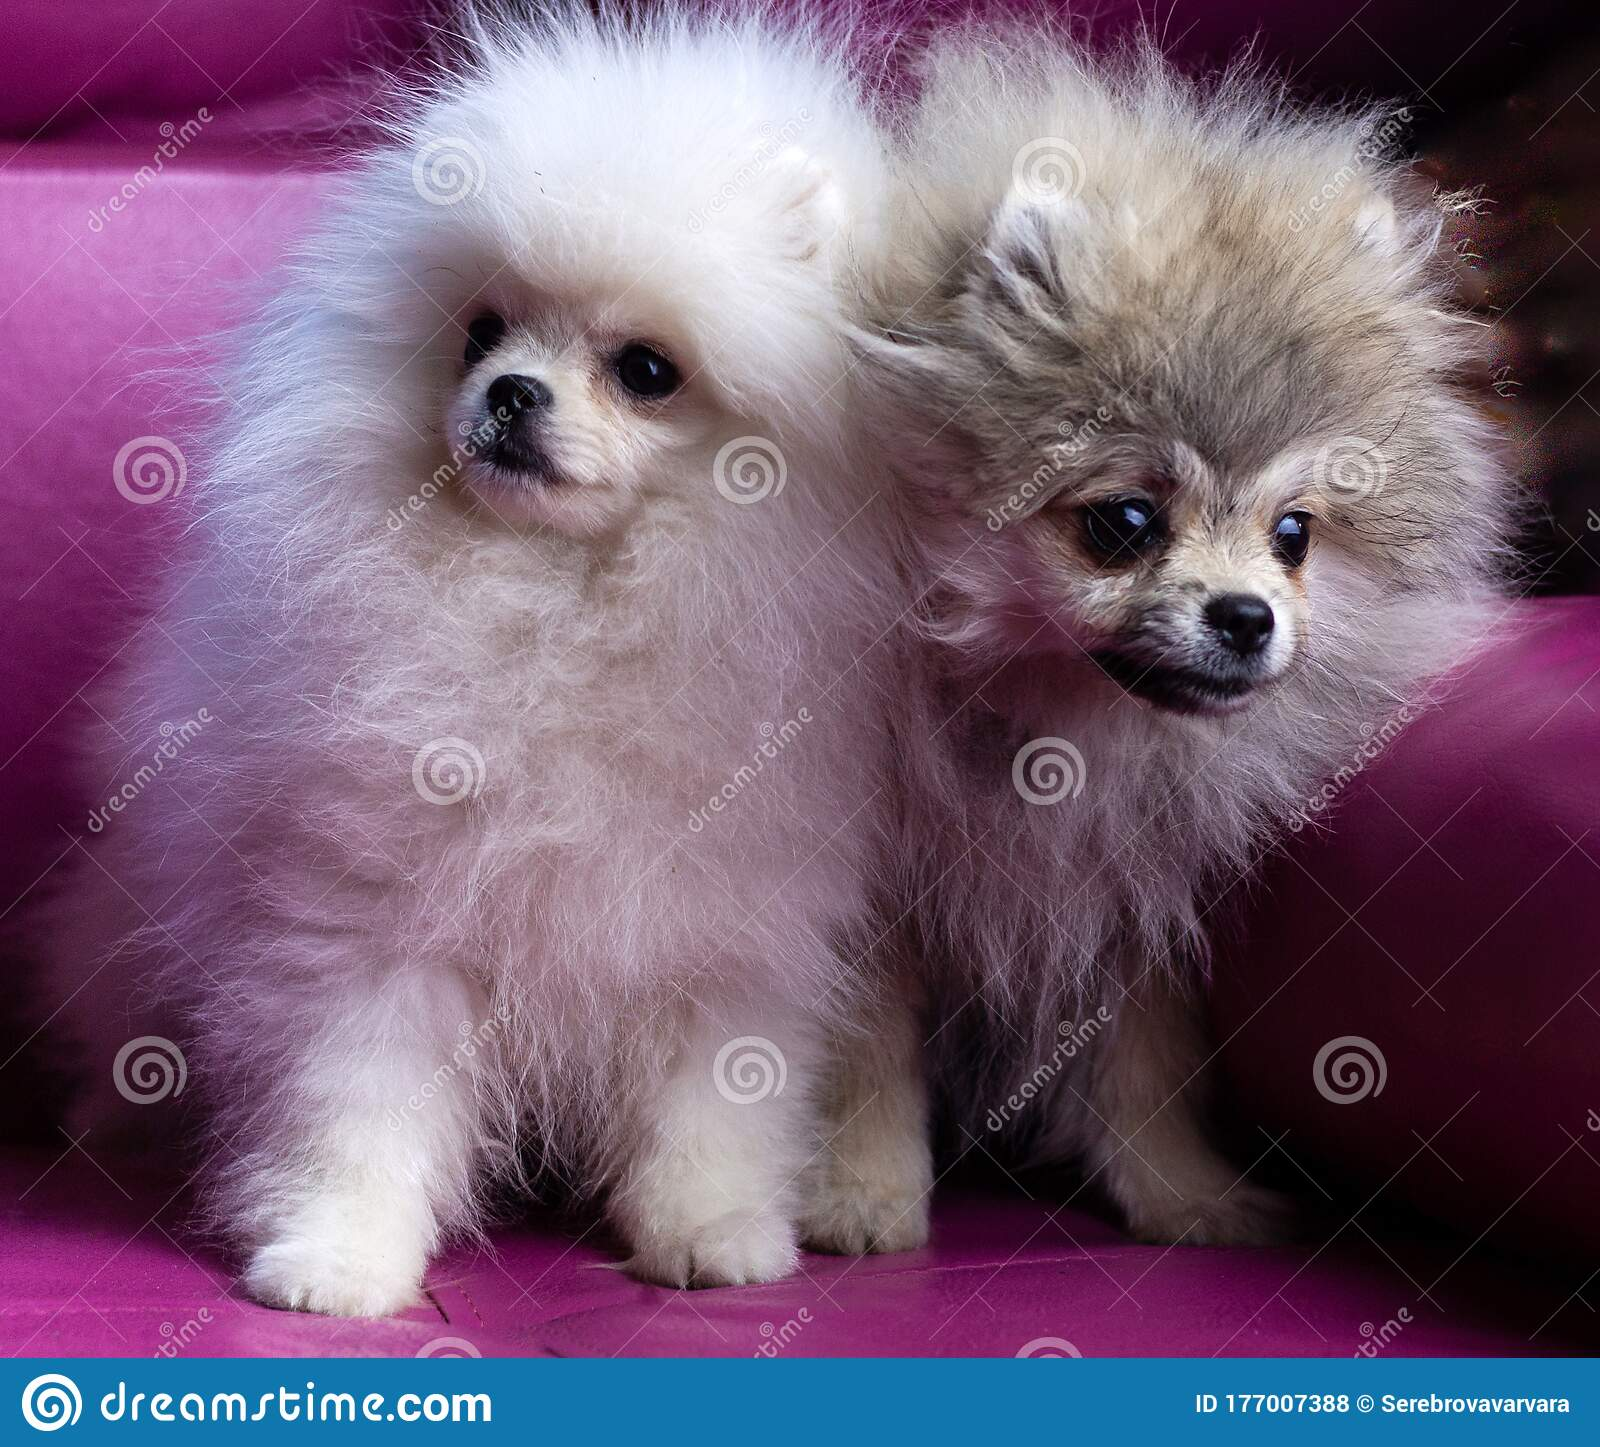 Two Pomeranian Puppies White And Grey Are Sitting On A Bright Pink Sofa Stock Photo Image Of Purebred Adorable 177007388